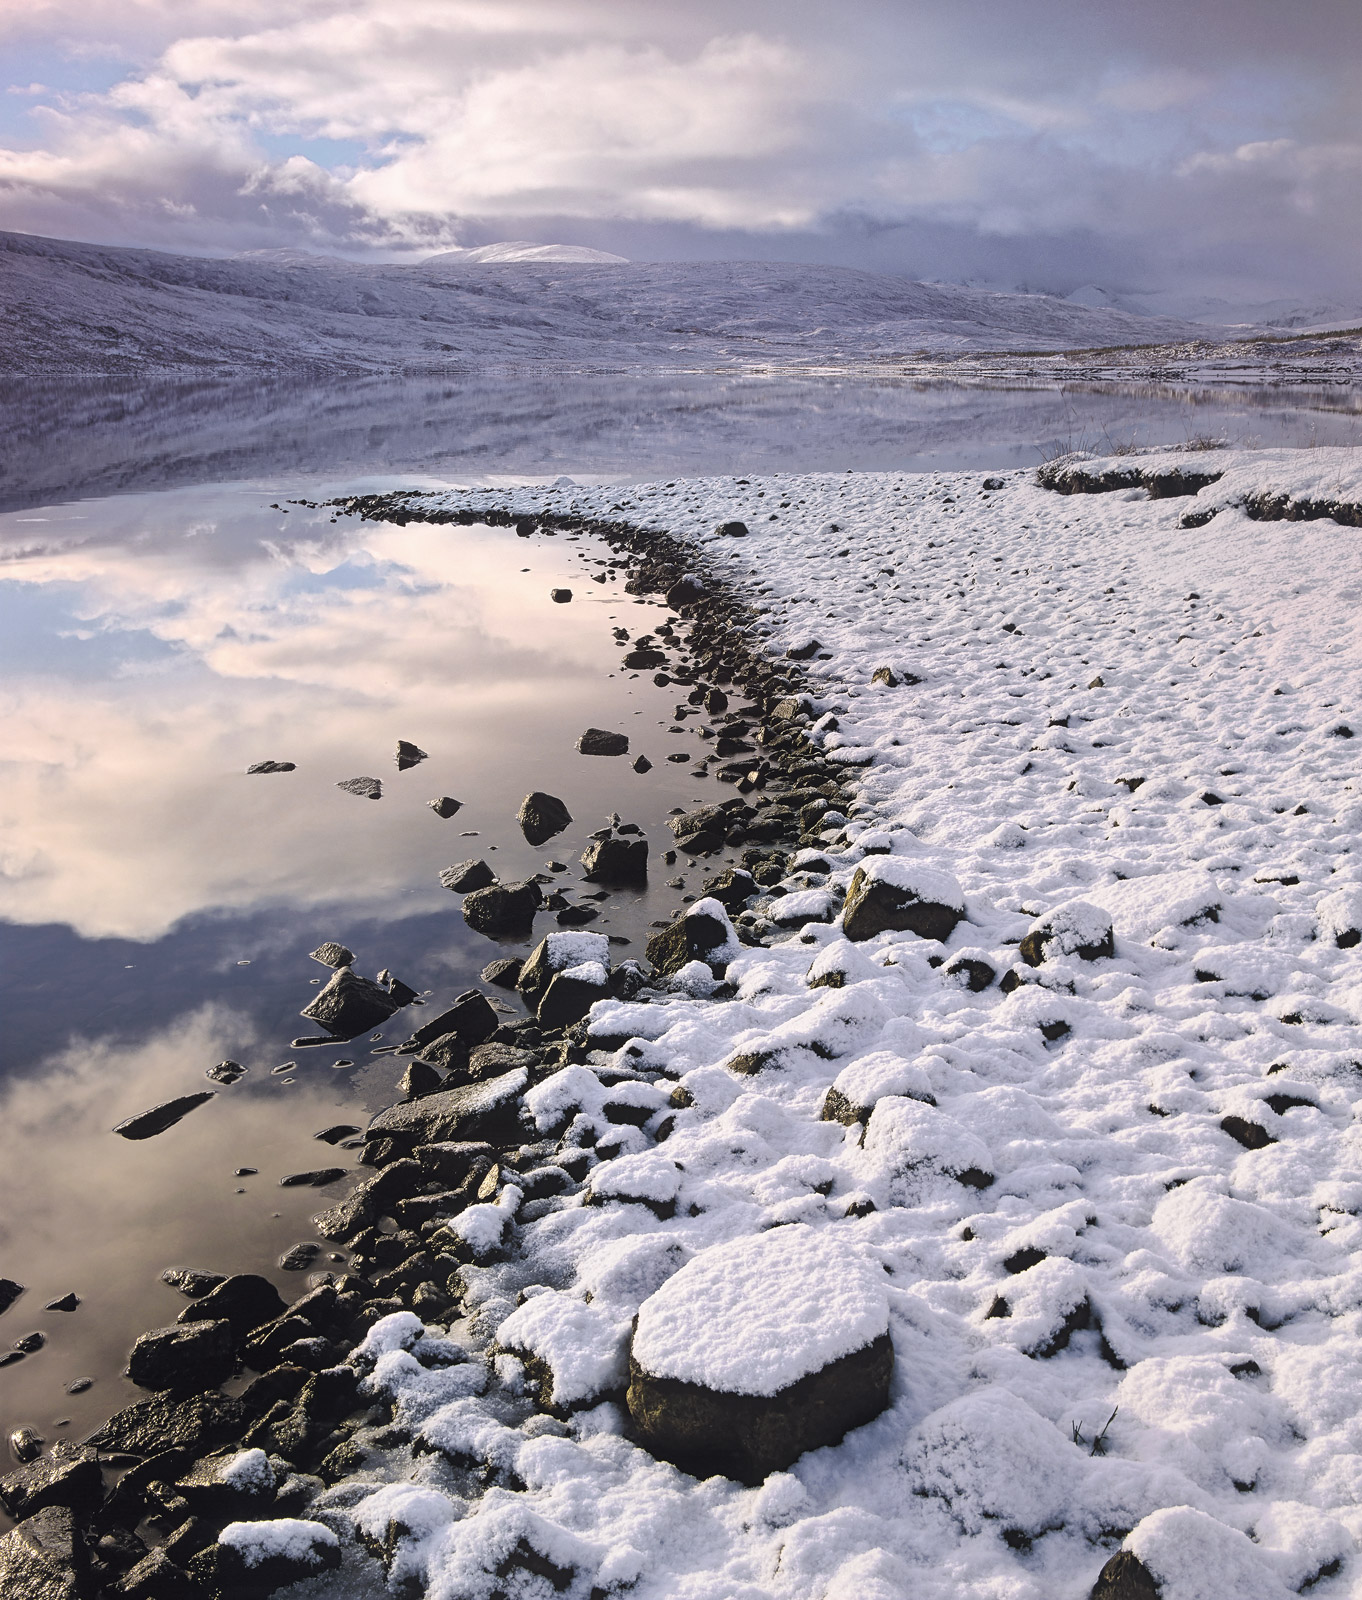 Snow Line 1, Loch a Chroisg, Torridon, Scotland, Achnasheen, Kinlochewe, mirror, flat, snow, dusted, unblemished, tinged, reflected, rising sun, pink, photo